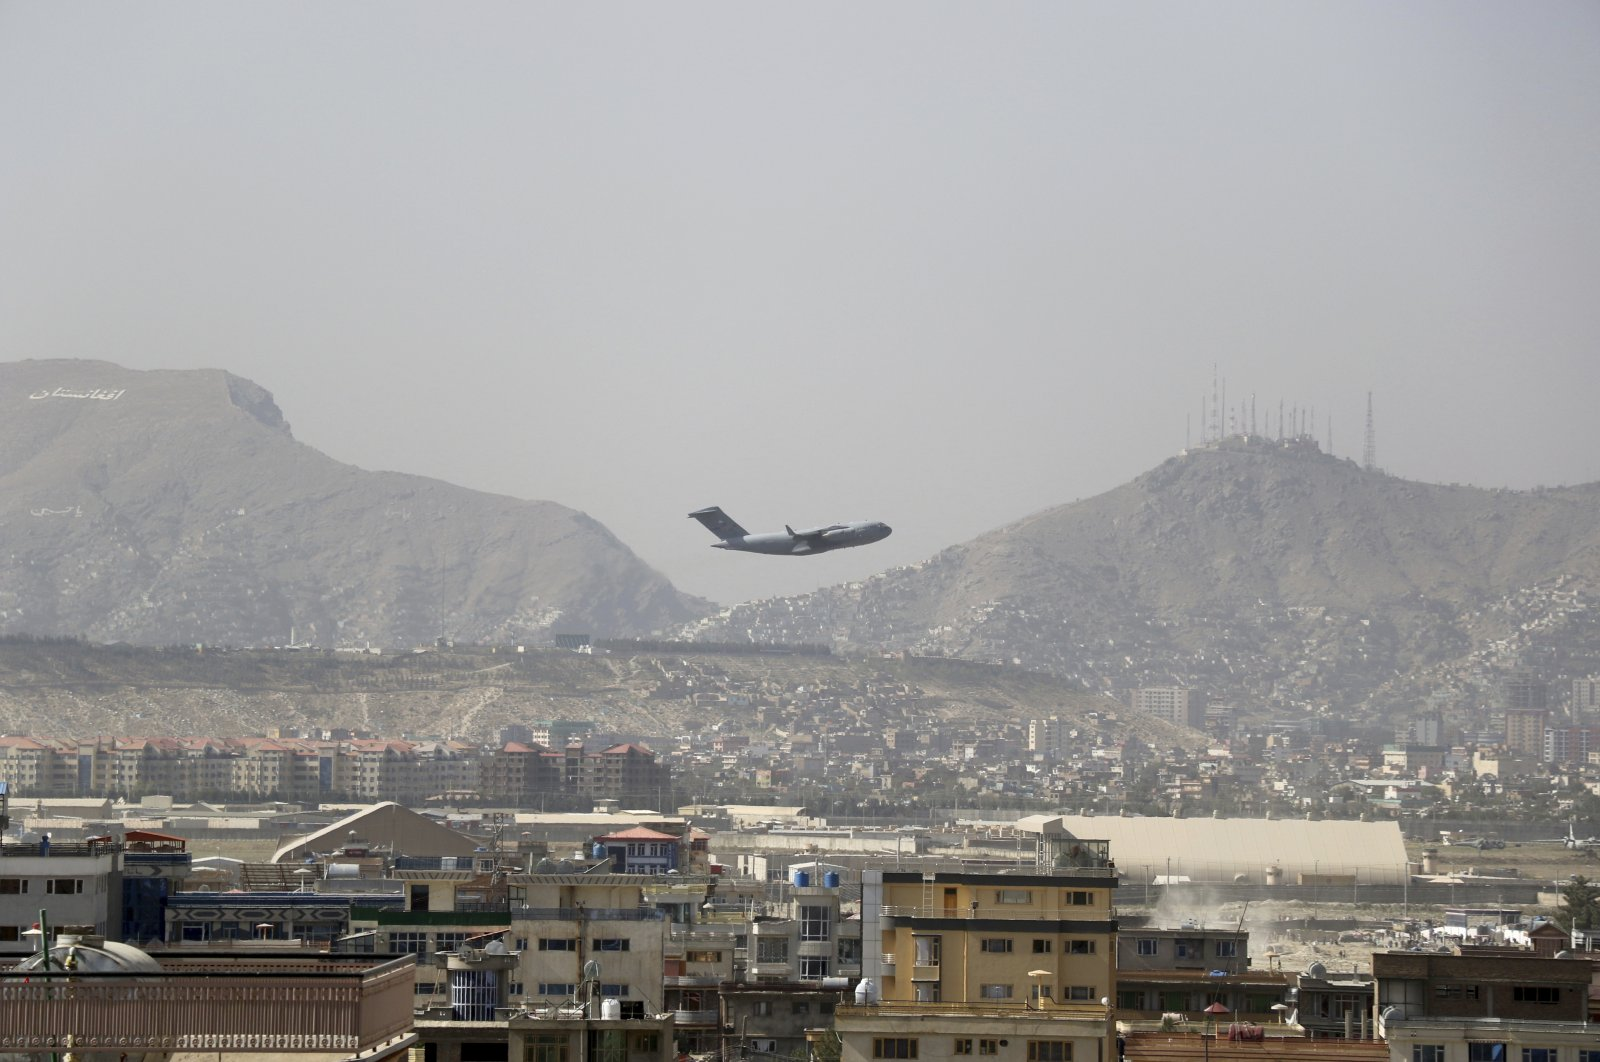 U.S military aircraft takes off at the Hamid Karzai International Airport in Kabul, Afghanistan, Saturday, Aug. 28, 2021. (AP Photo)